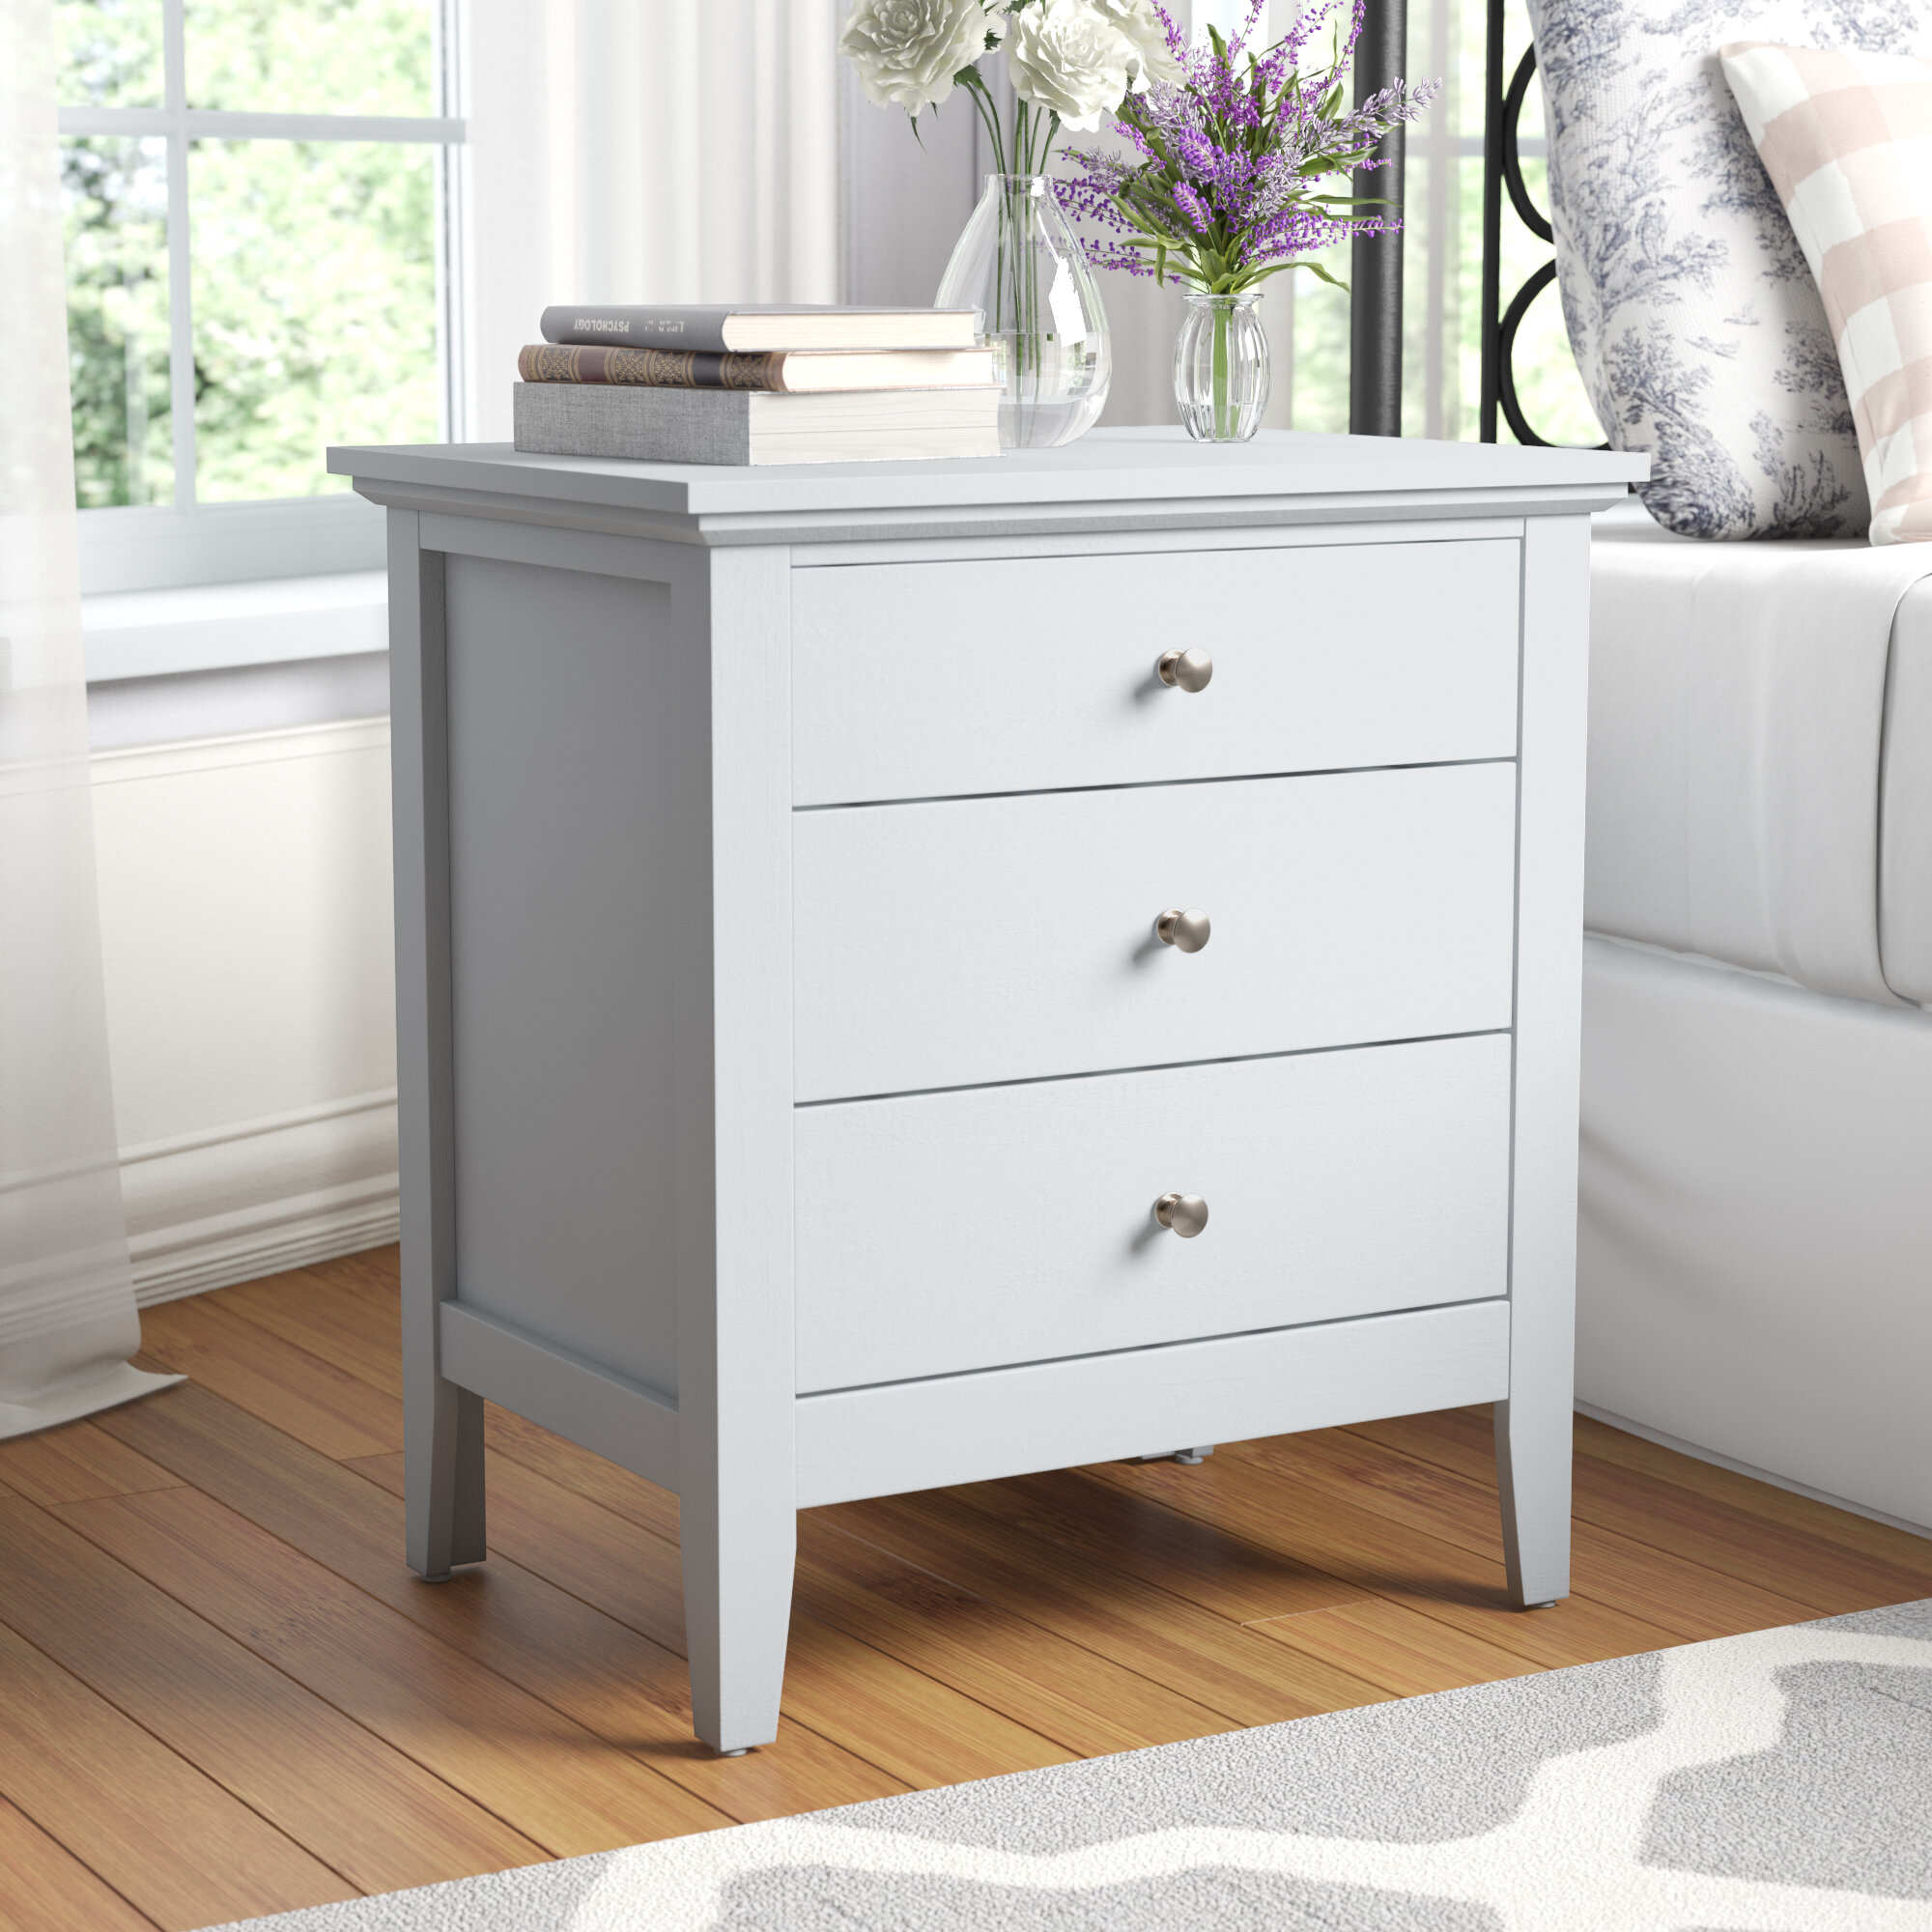 Nightstands & Bedside Tables  Wayfair